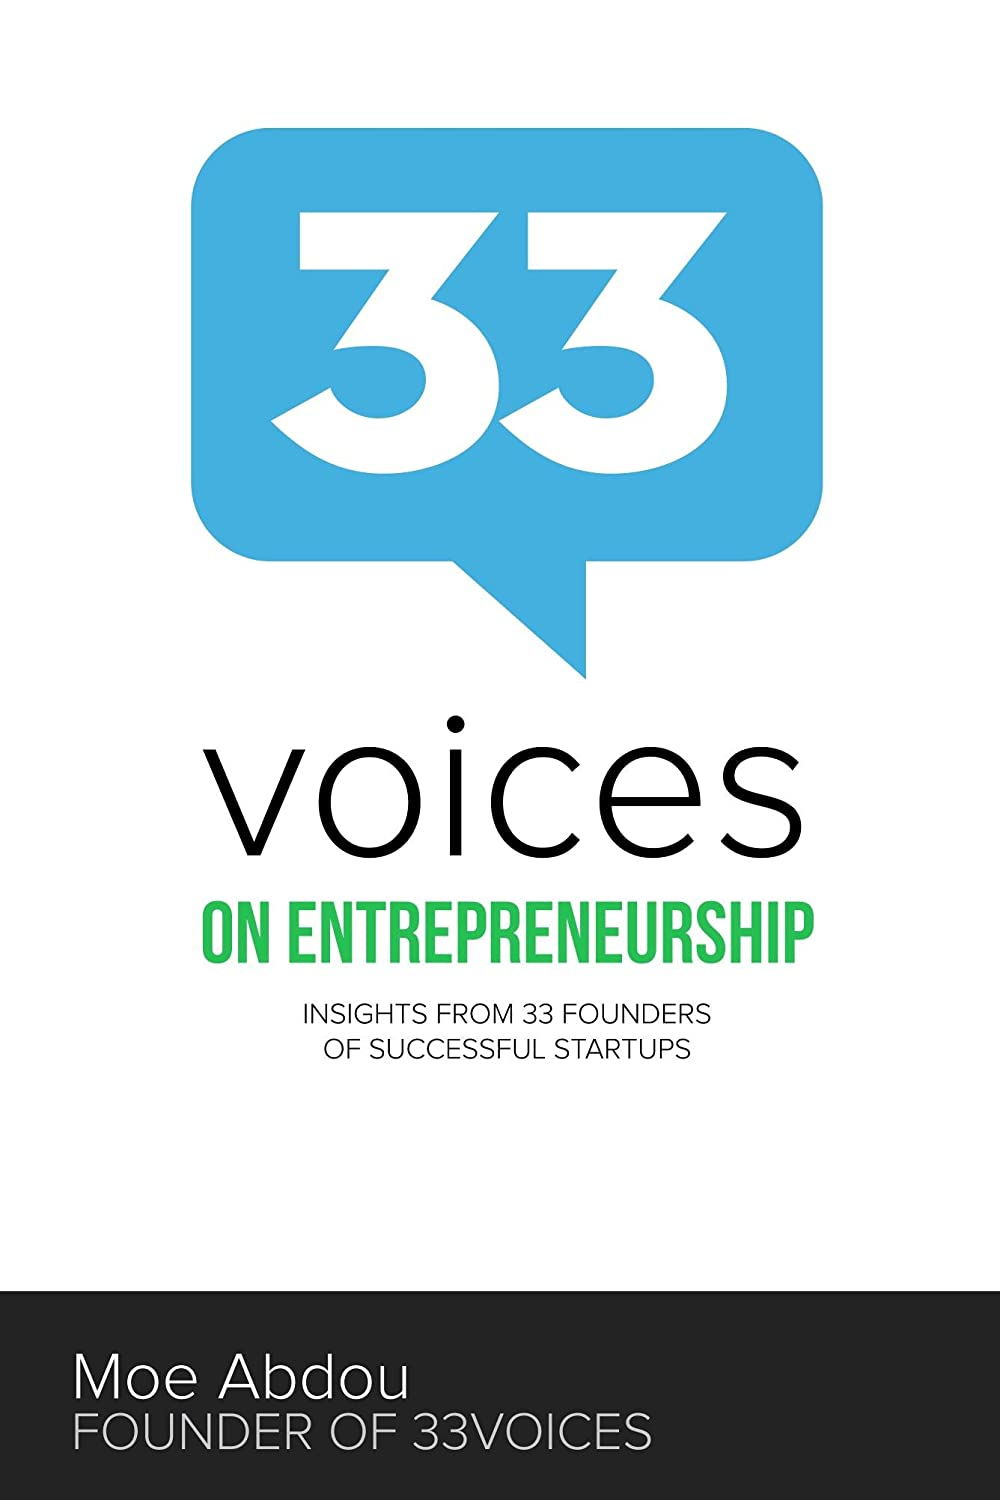 33voices on Entrepreneurship: Insights from 33 Founders of Successful Startups